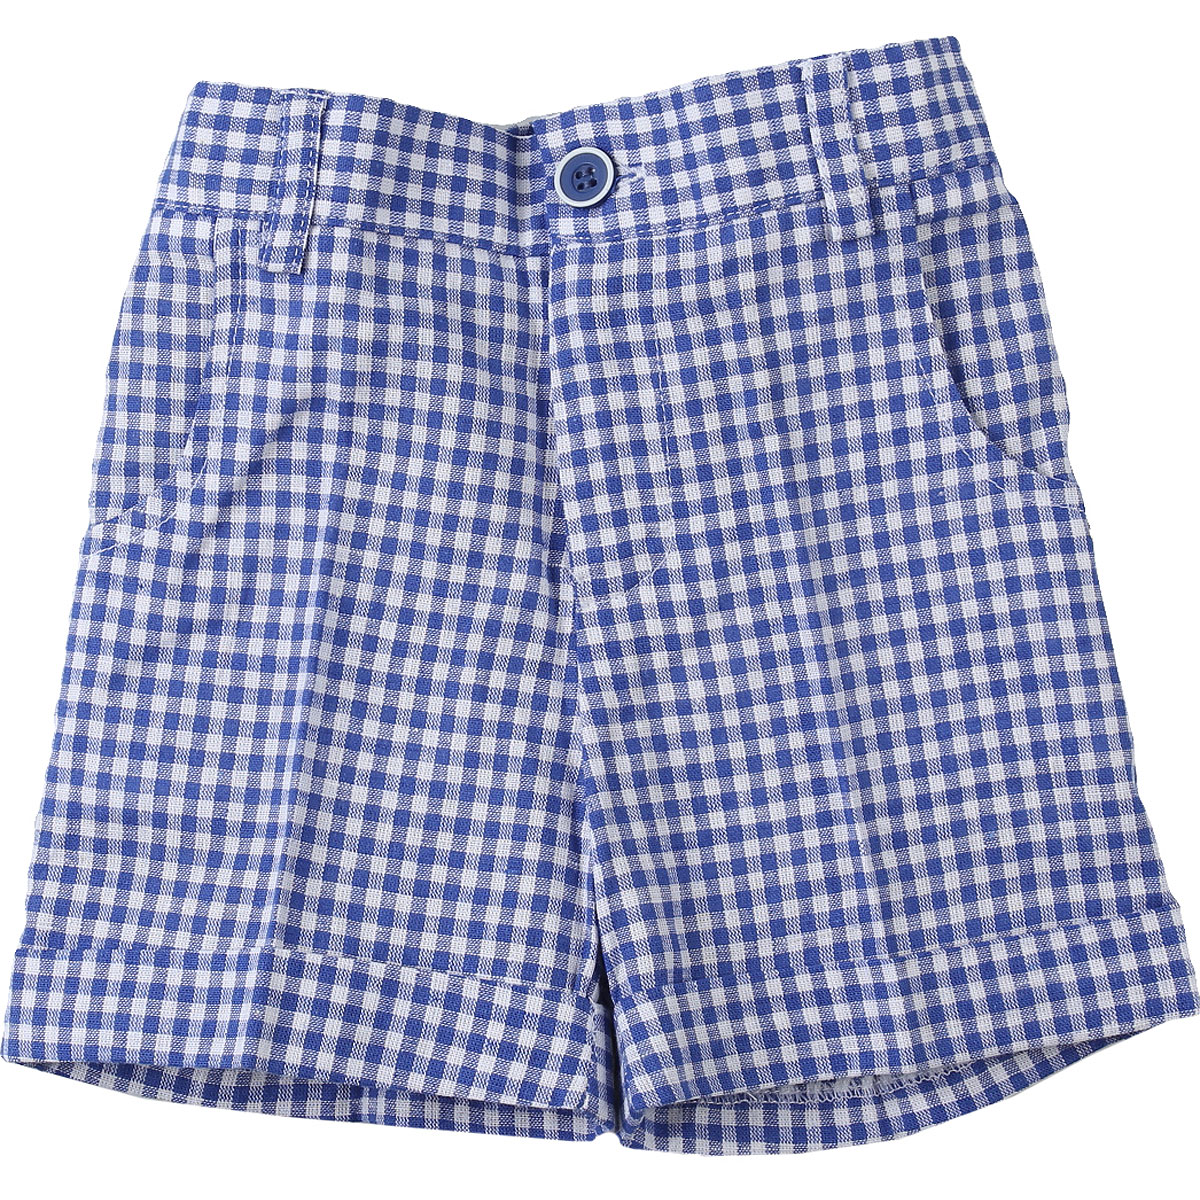 Paz Rodriguez Baby Shorts for Boys On Sale, Blue, Cotton, 2019, 12 M 2Y